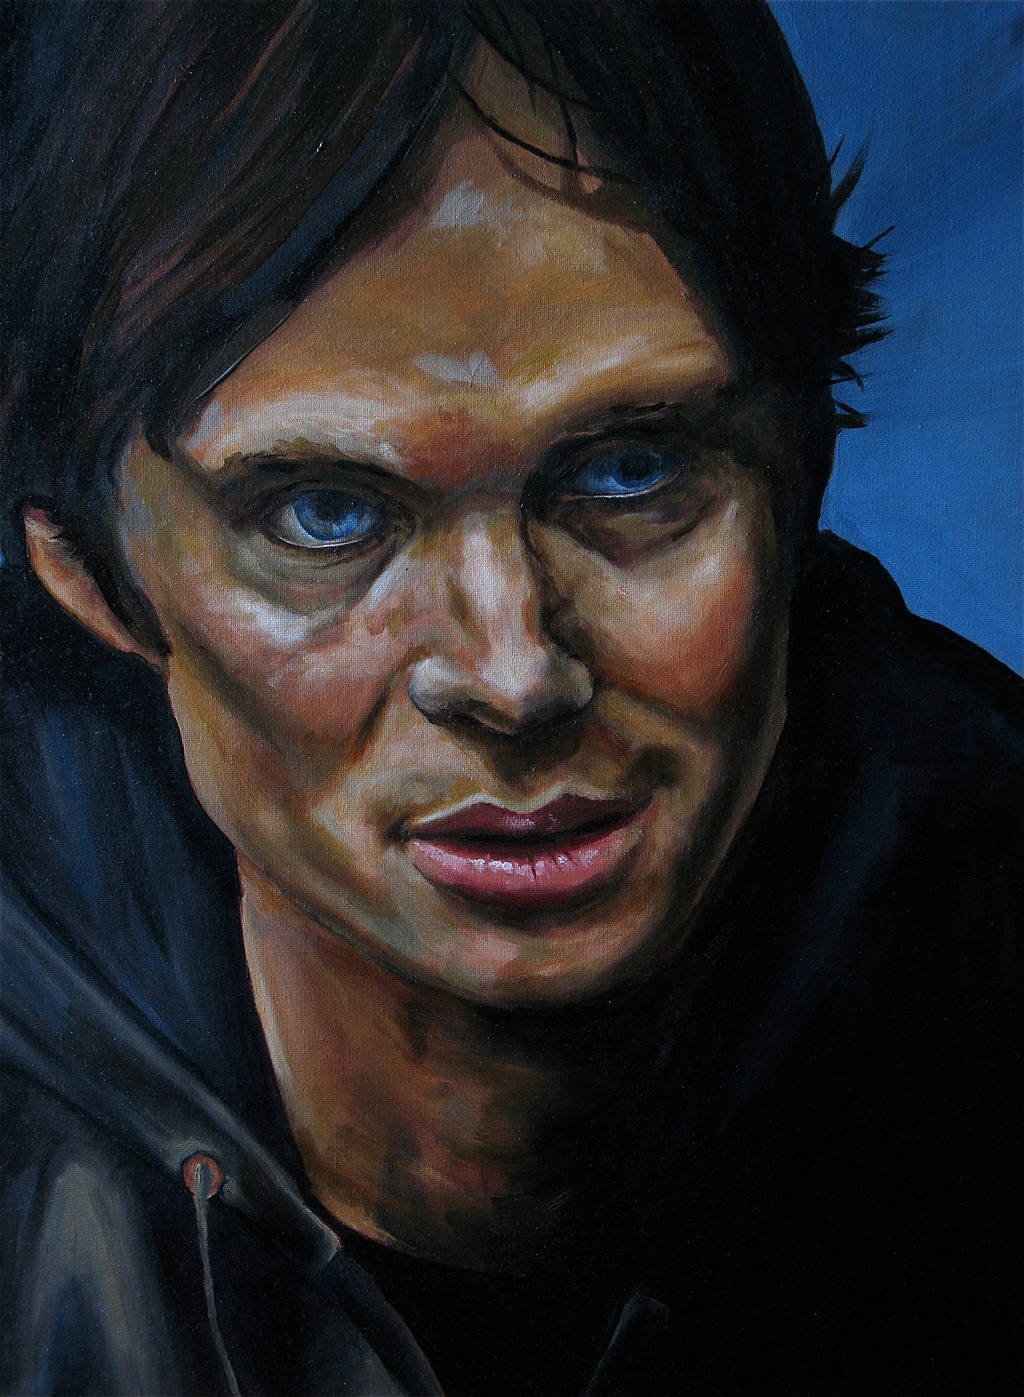 Cillian by fourquods